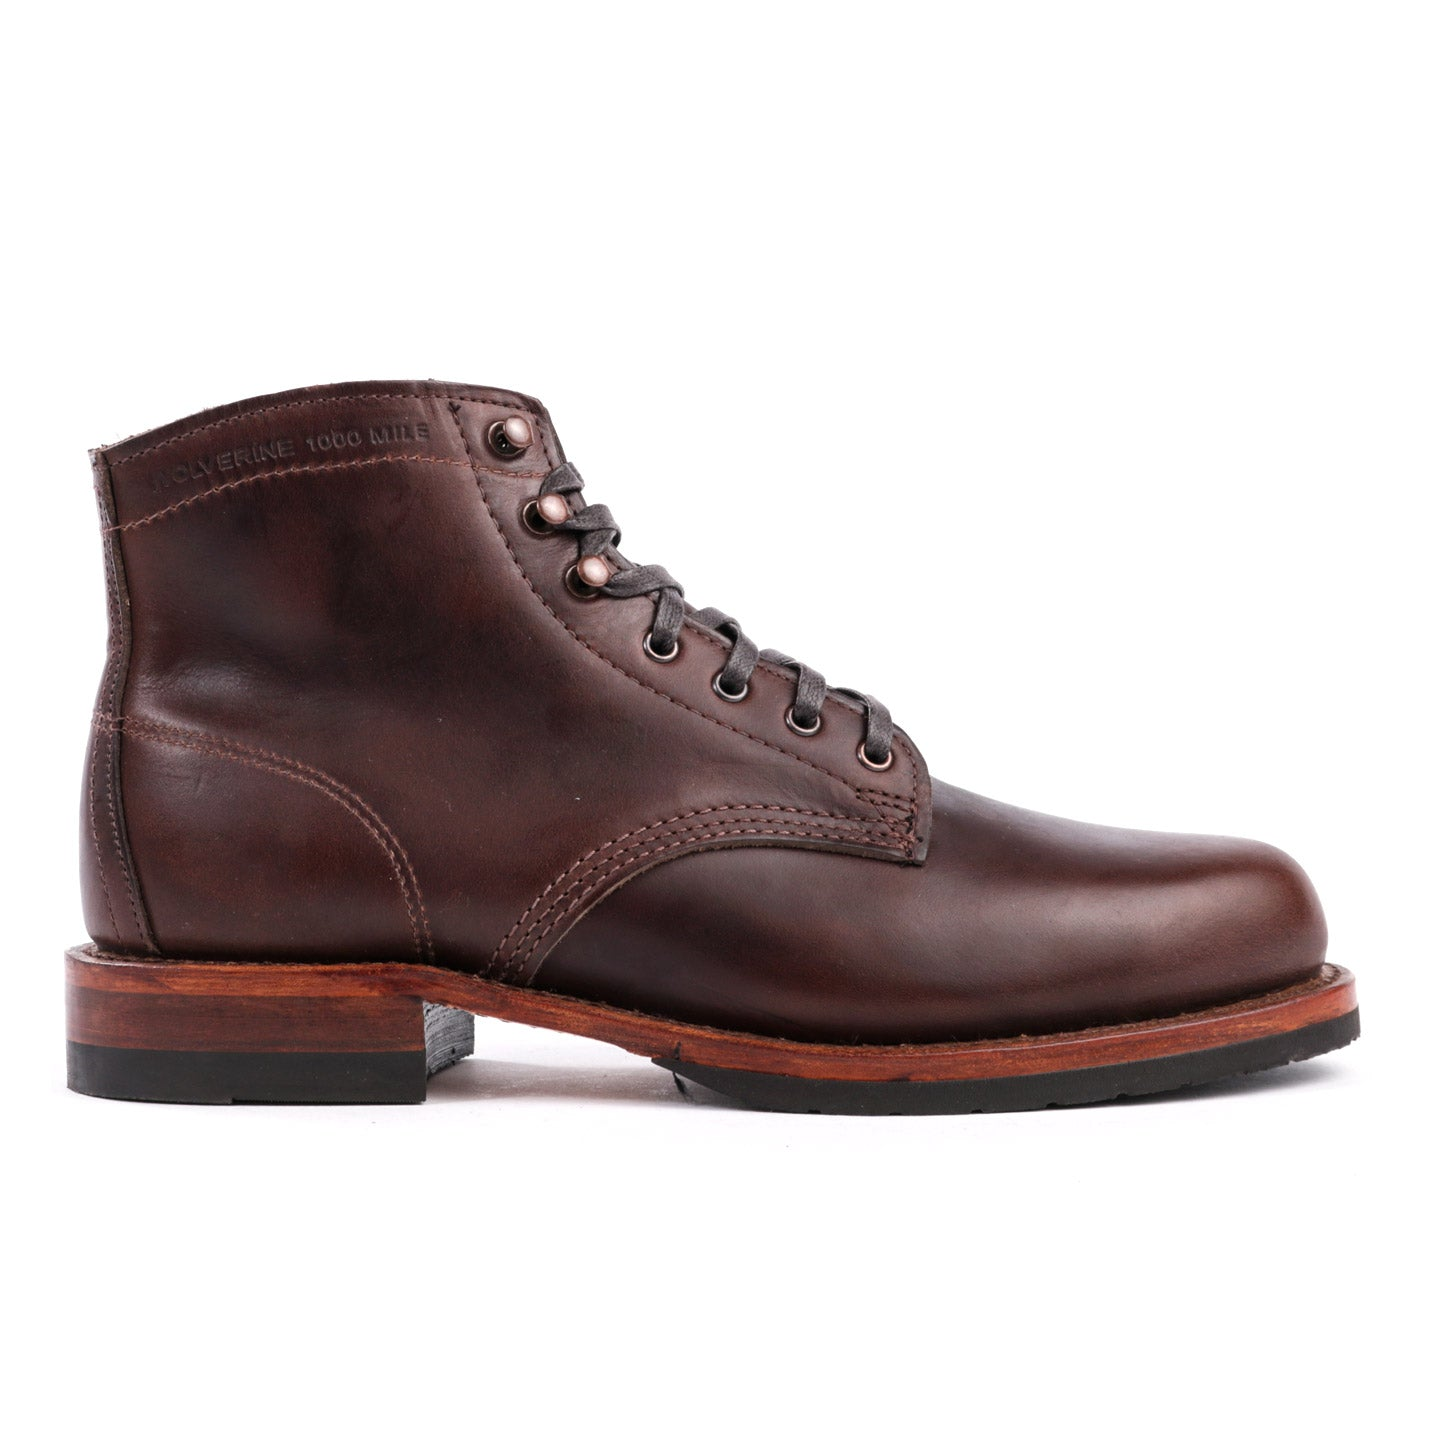 138aa670927 WOLVERINE 1000 MILE DUVALL BOOT BROWN | TODAY CLOTHING